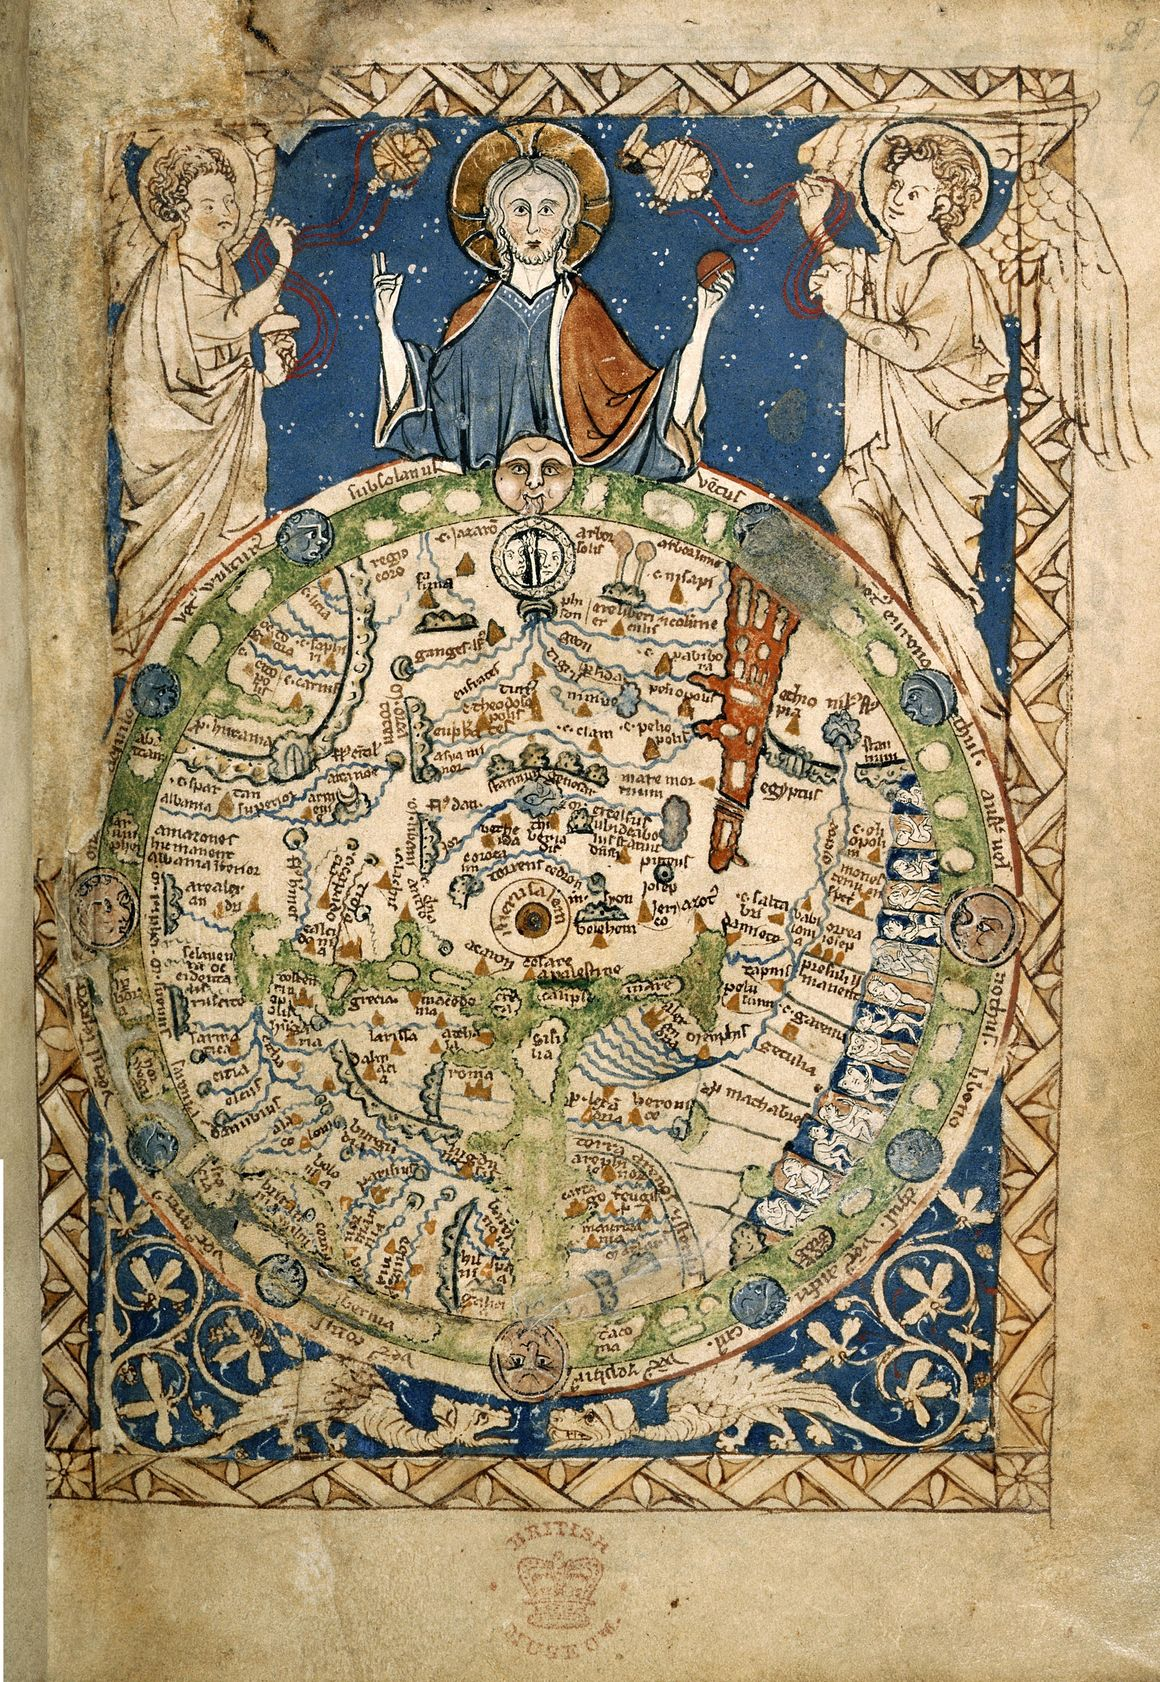 The Psalter World Map, which is from c. 1260